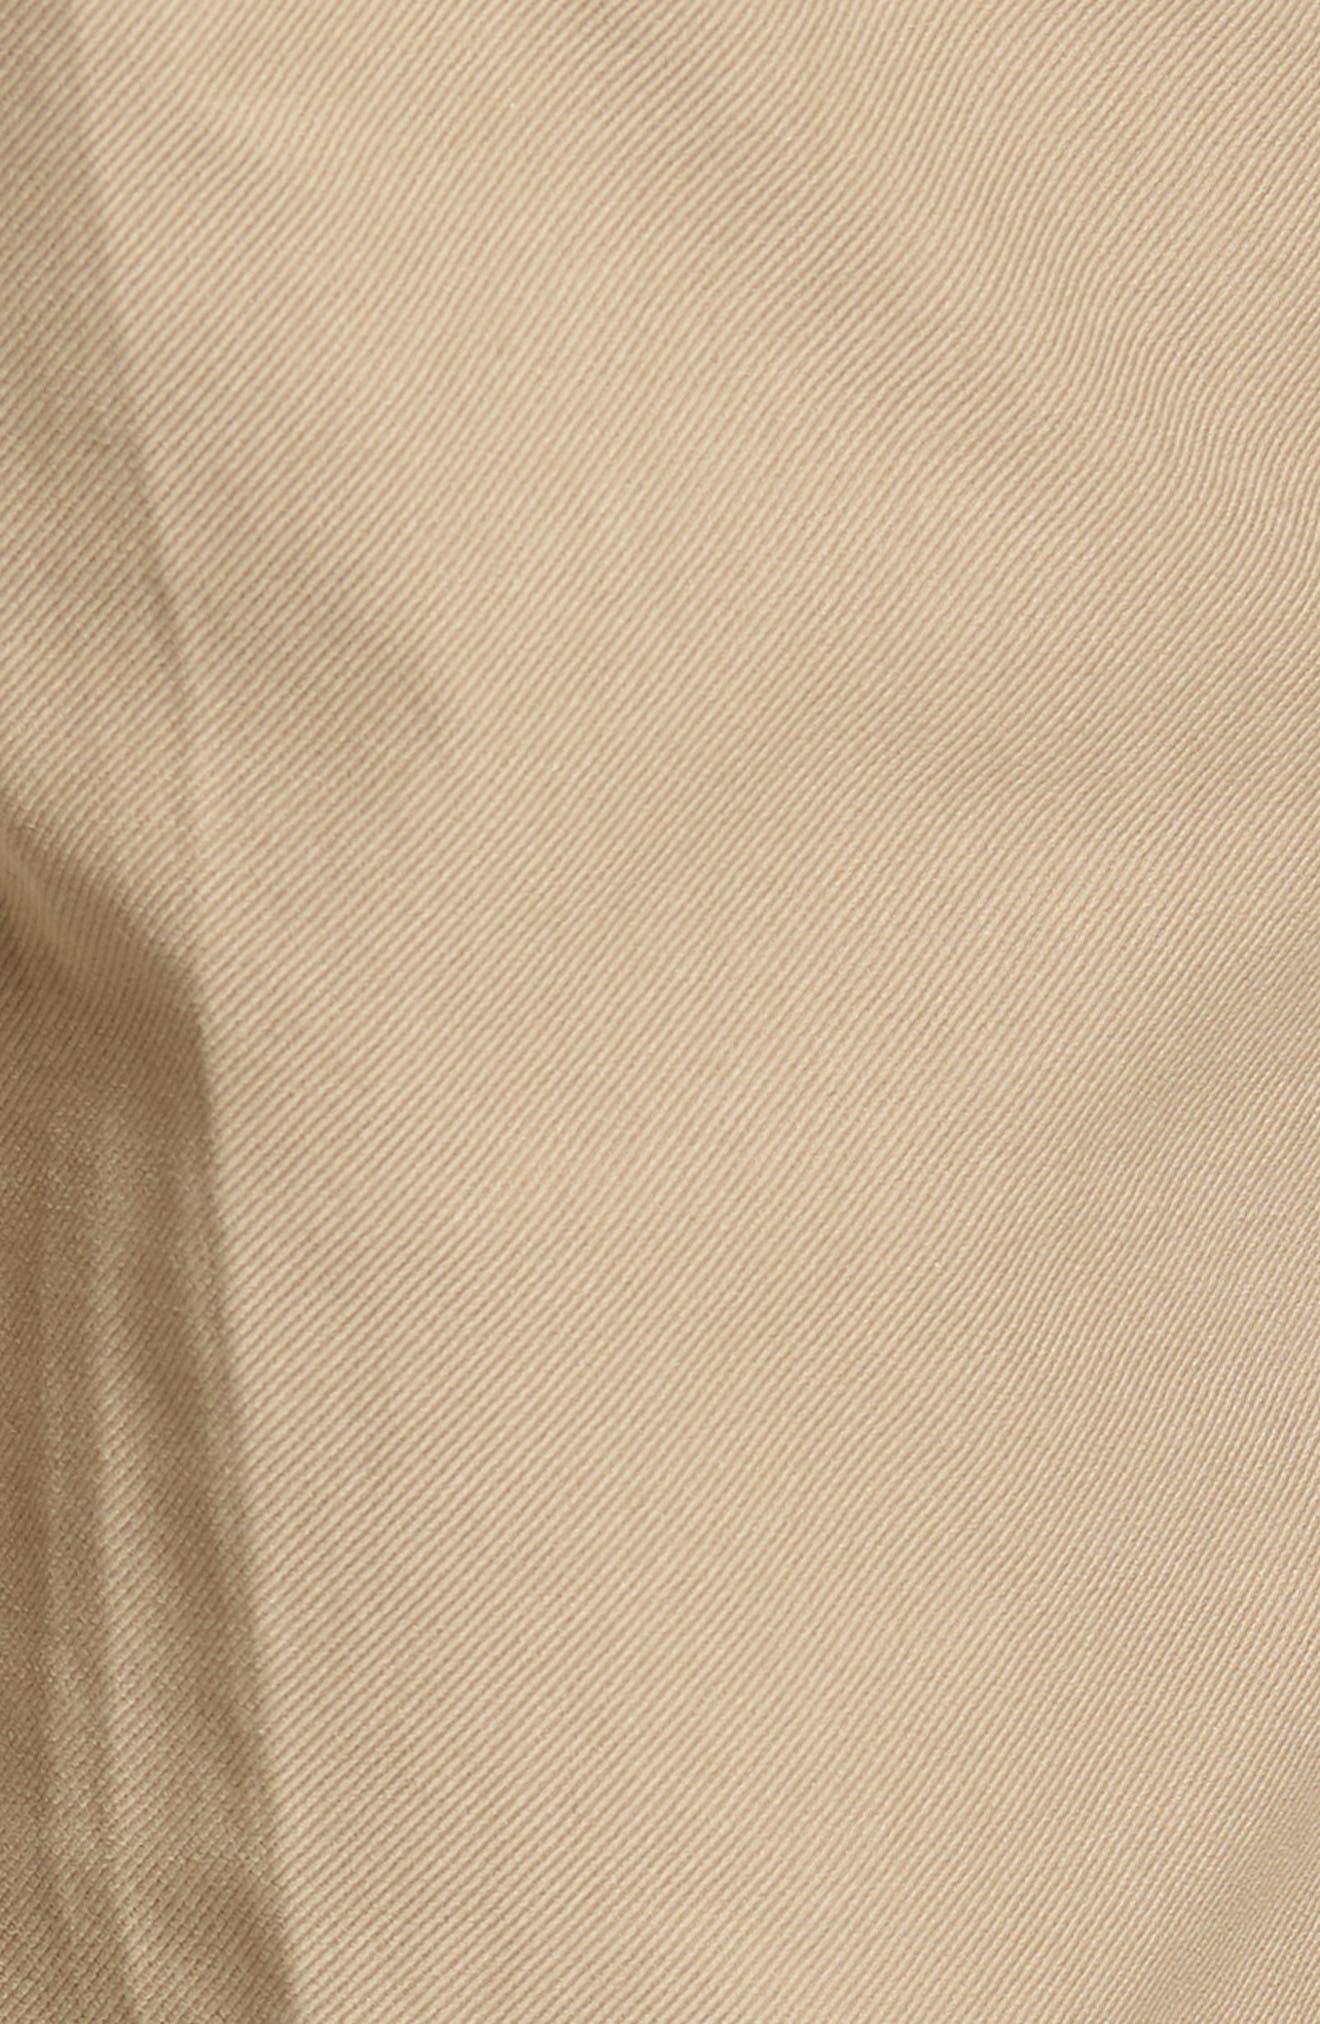 Five-Pocket Solid Stretch Cotton Trousers,                             Alternate thumbnail 5, color,                             STONE